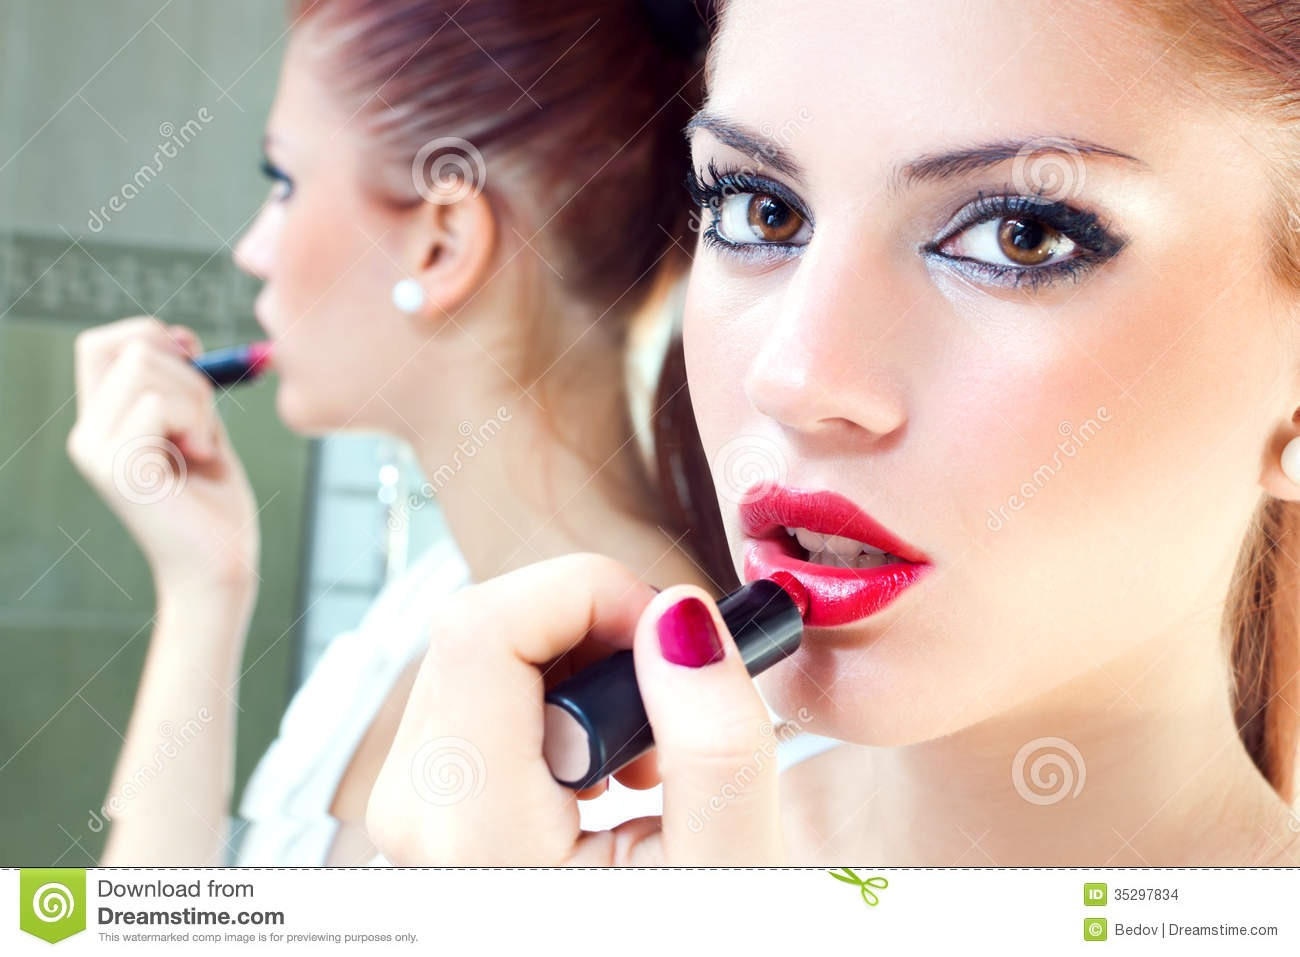 7. Start in the middle. Begin applying lipstick at the center of your lips and move outward. That way, you'll be less shaky when it comes to the outer lines of your lips. Less shaky = less mistakes.